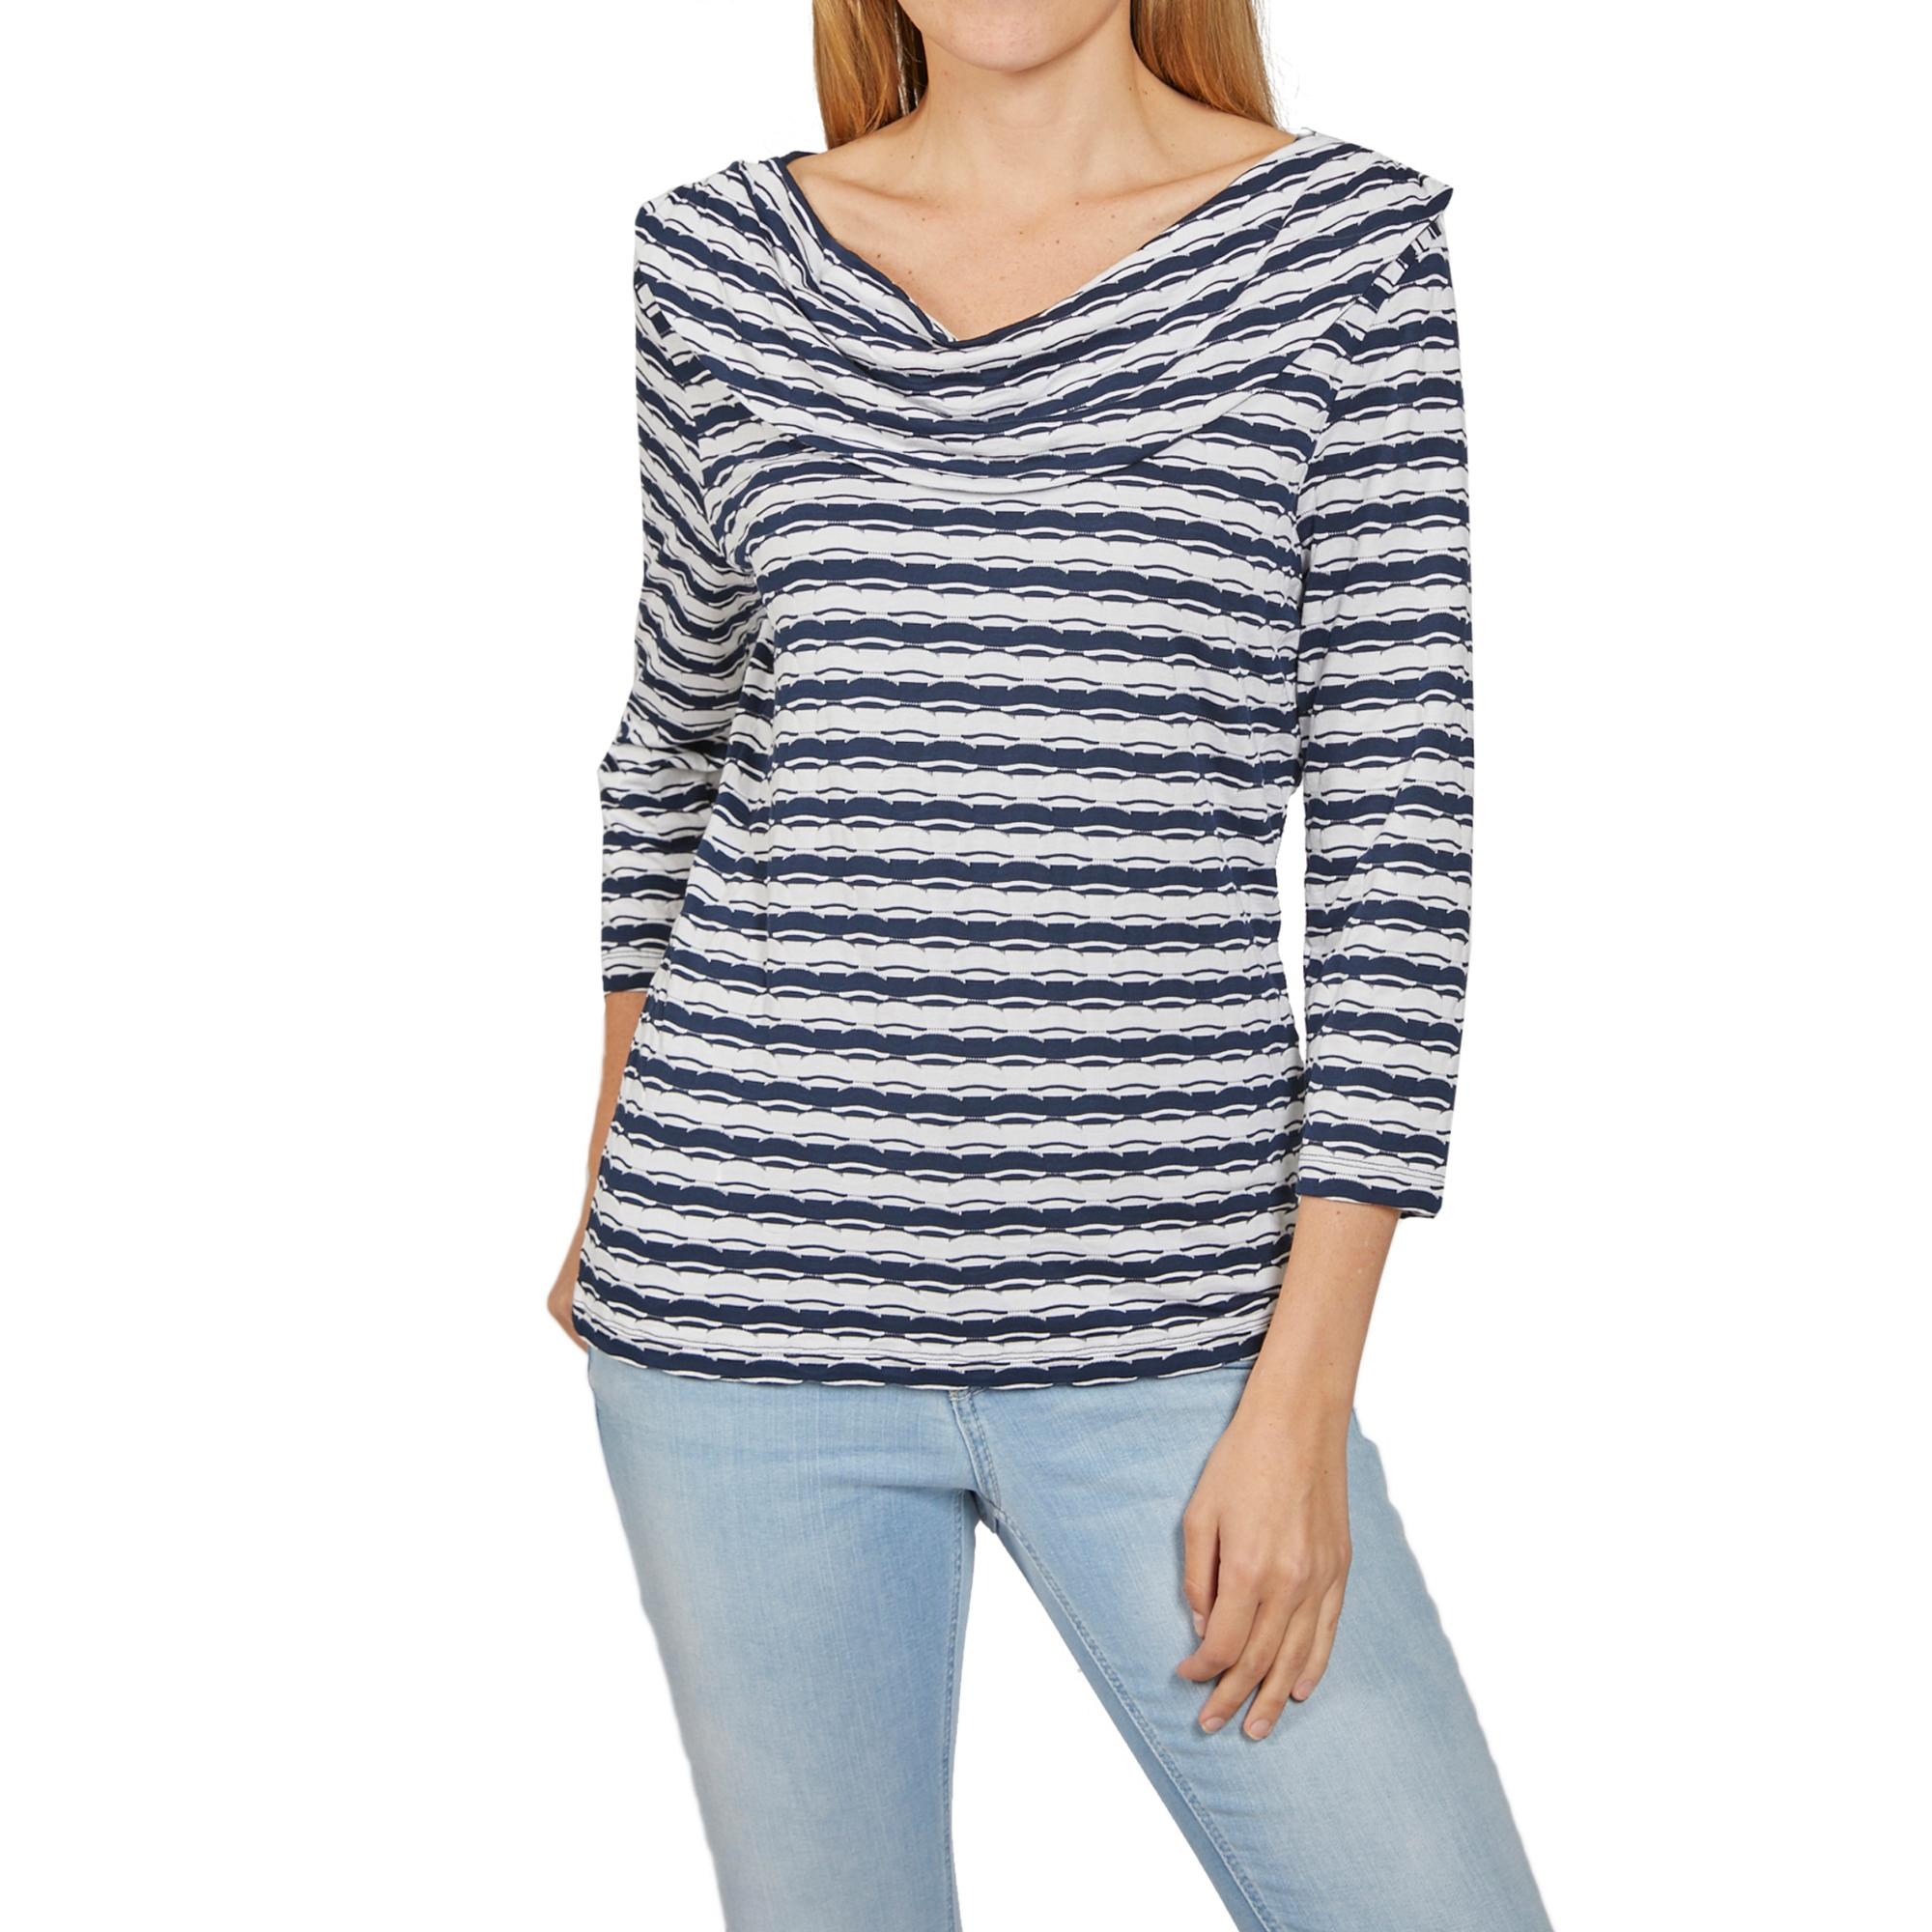 Betty Barclay Damen Shirt Langarmshirt Blausenshirt Freizeit Kleidung Mode blau